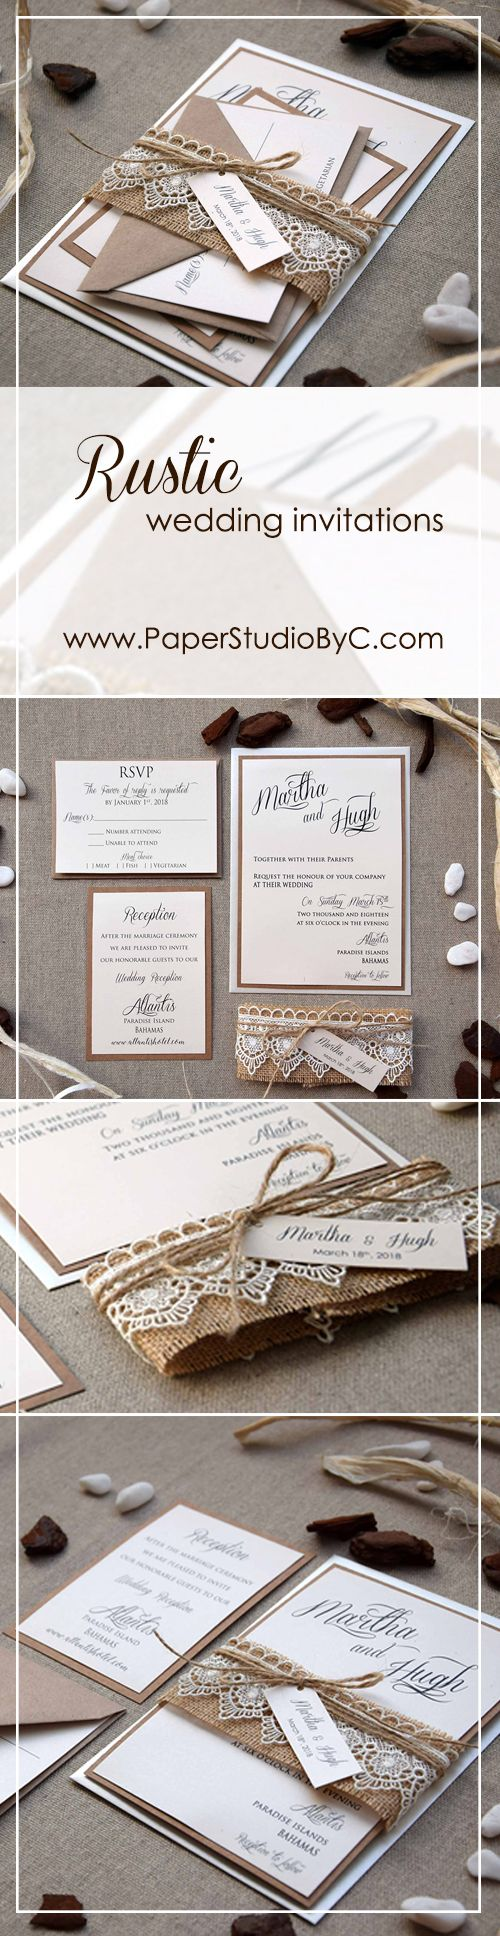 Burlap and Lace Wedding Invitations Kit   PaperStudioByC   Pinterest ...